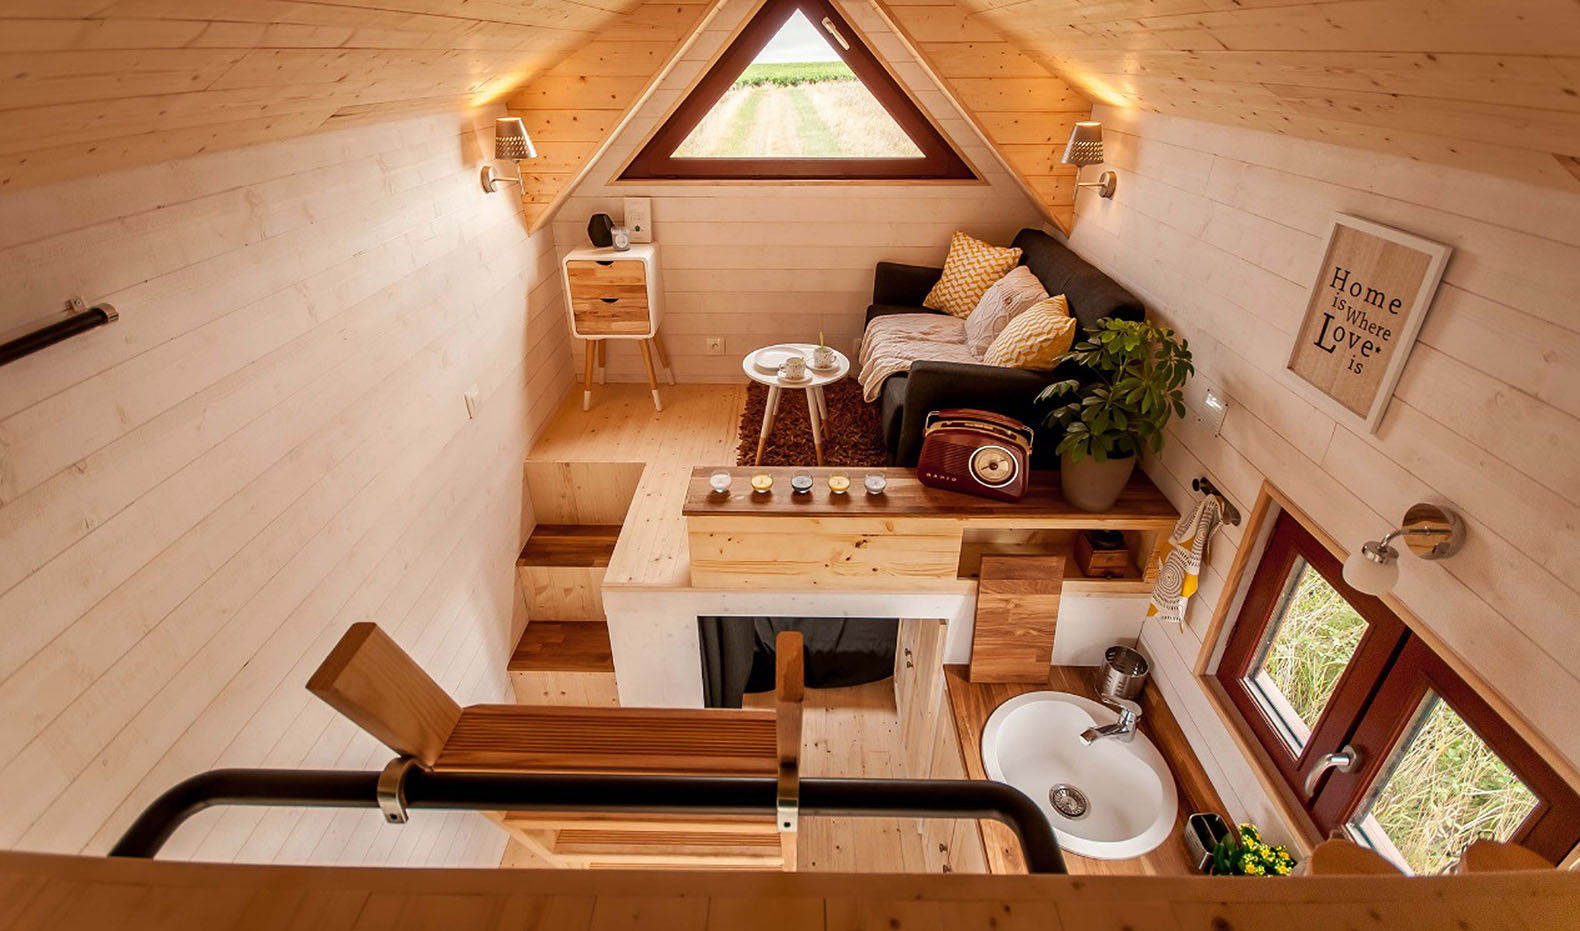 Fully furnished Odysse tiny house from France easily fits a